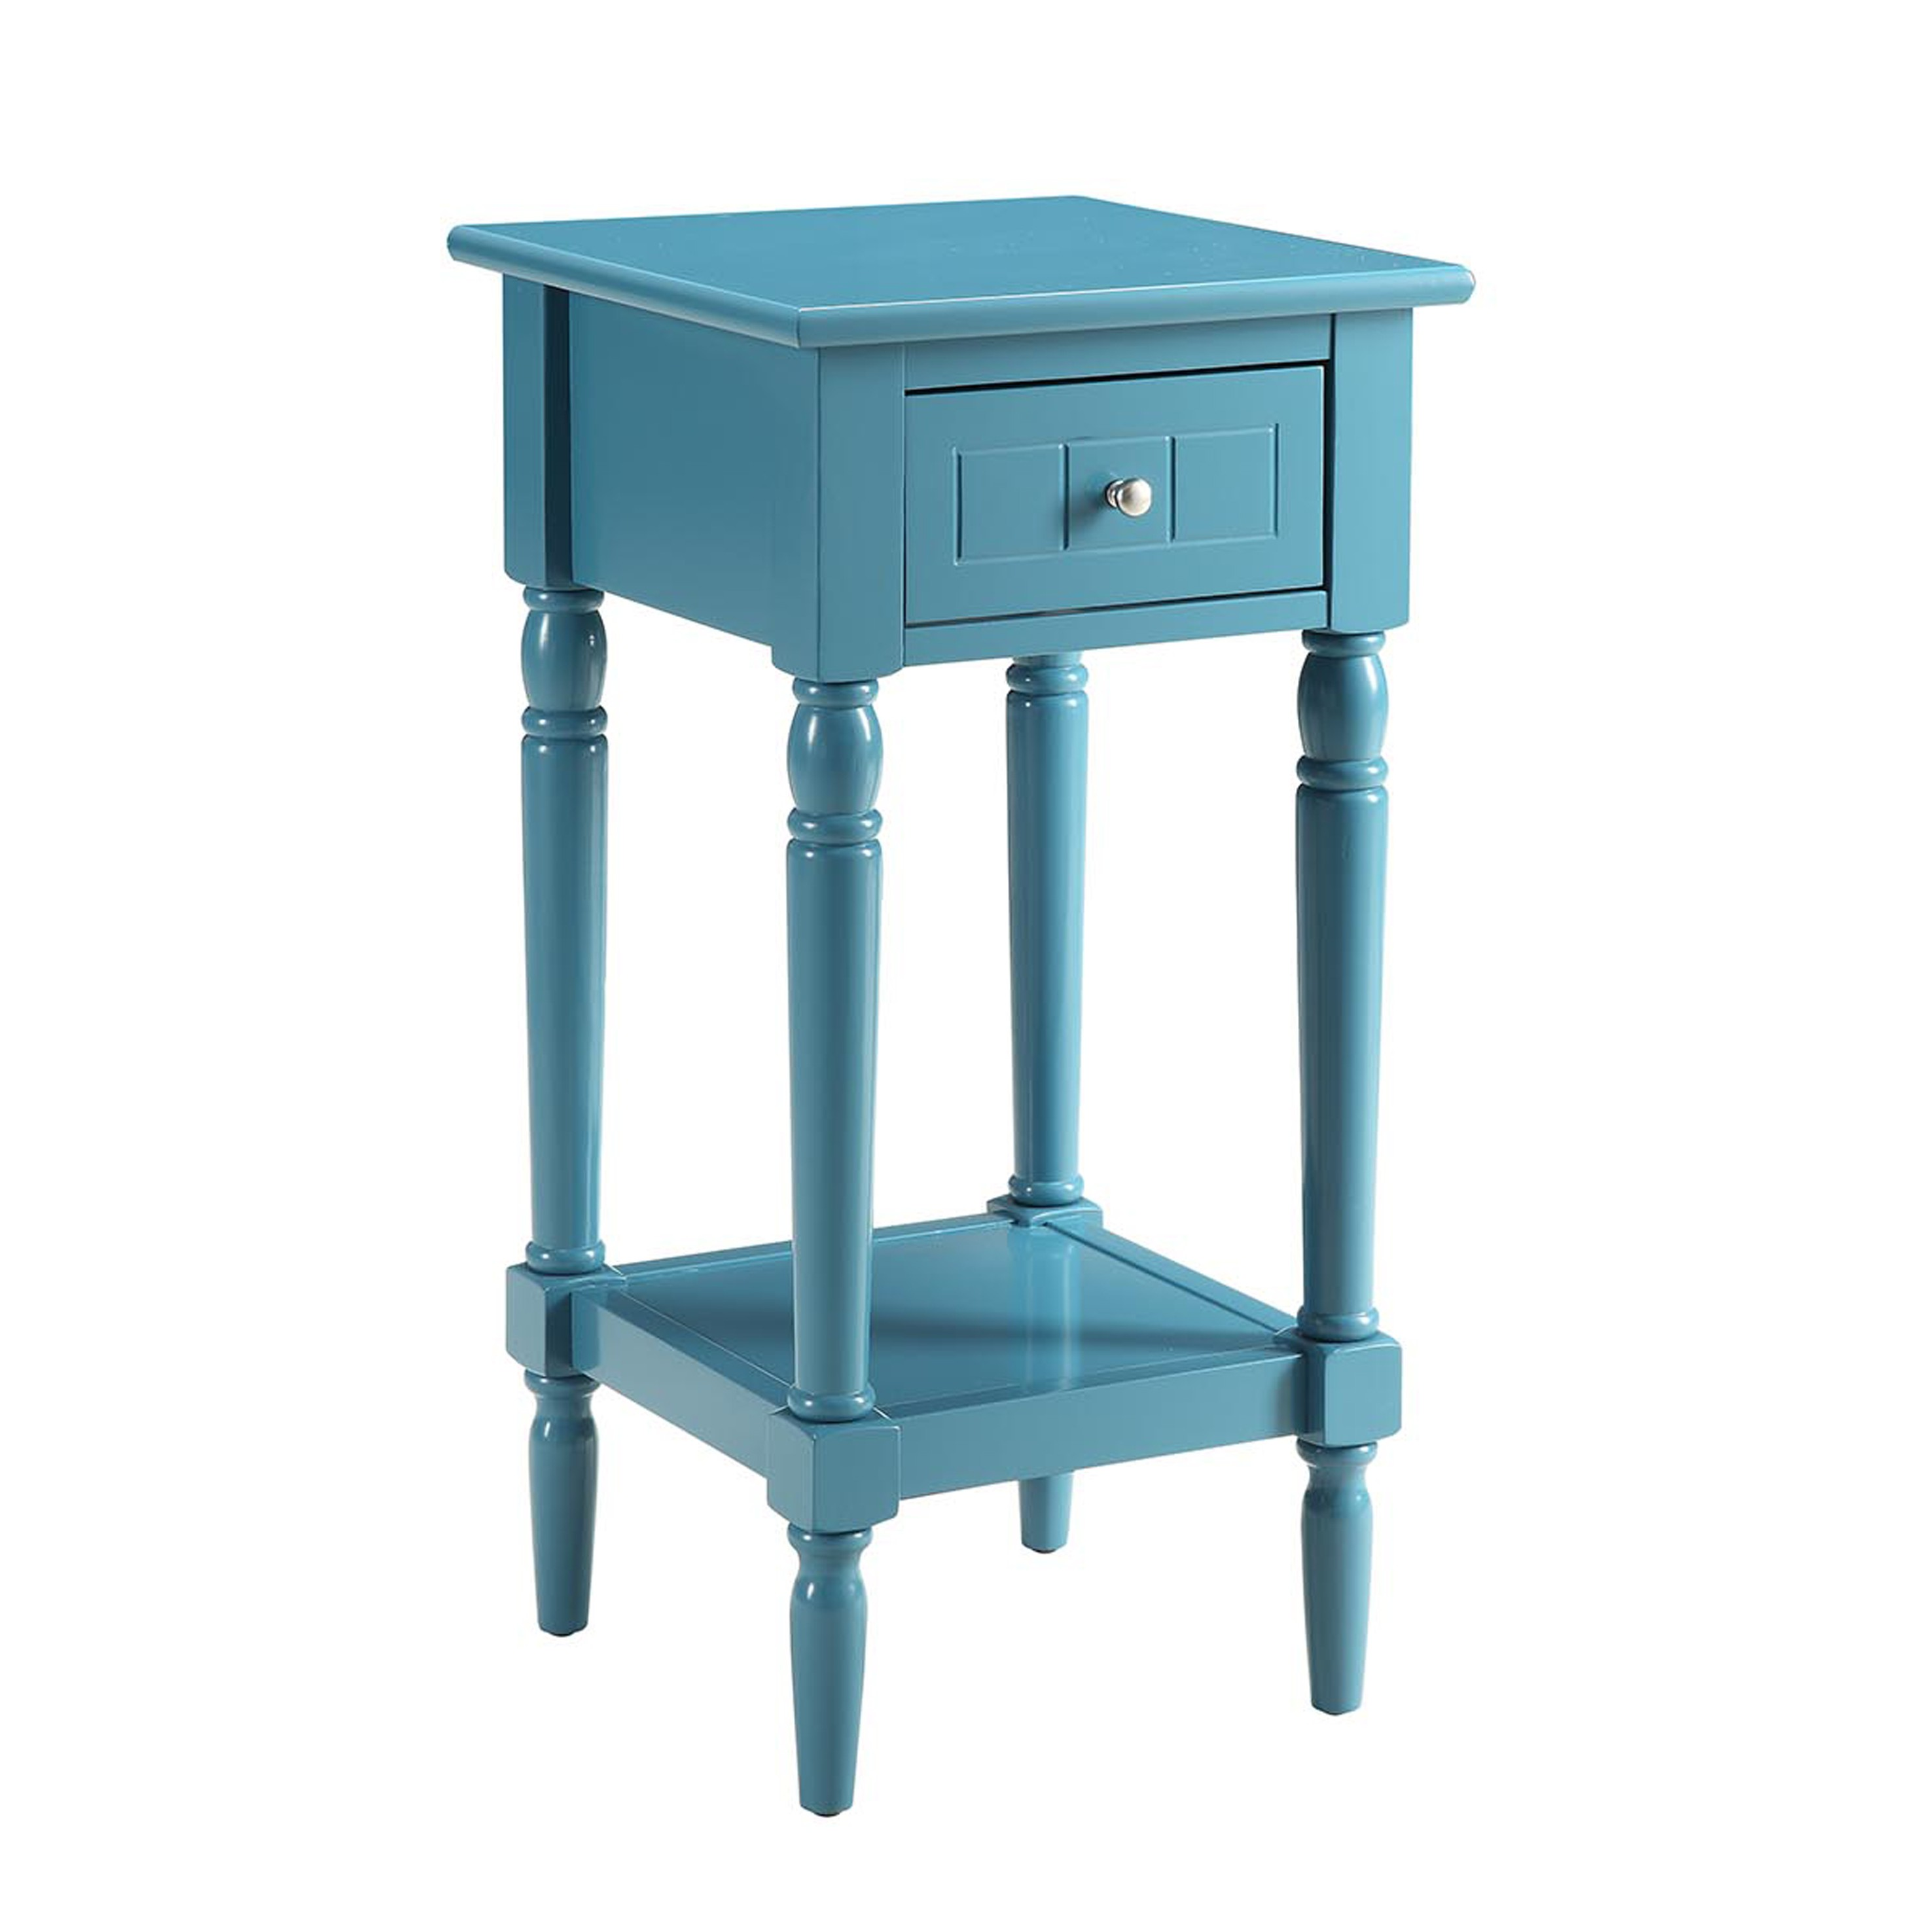 french country khloe accent table blue finish from convenience cnc resize aqua art deco lighting wrought iron end tables chair cushions outside patio set dining clearance small